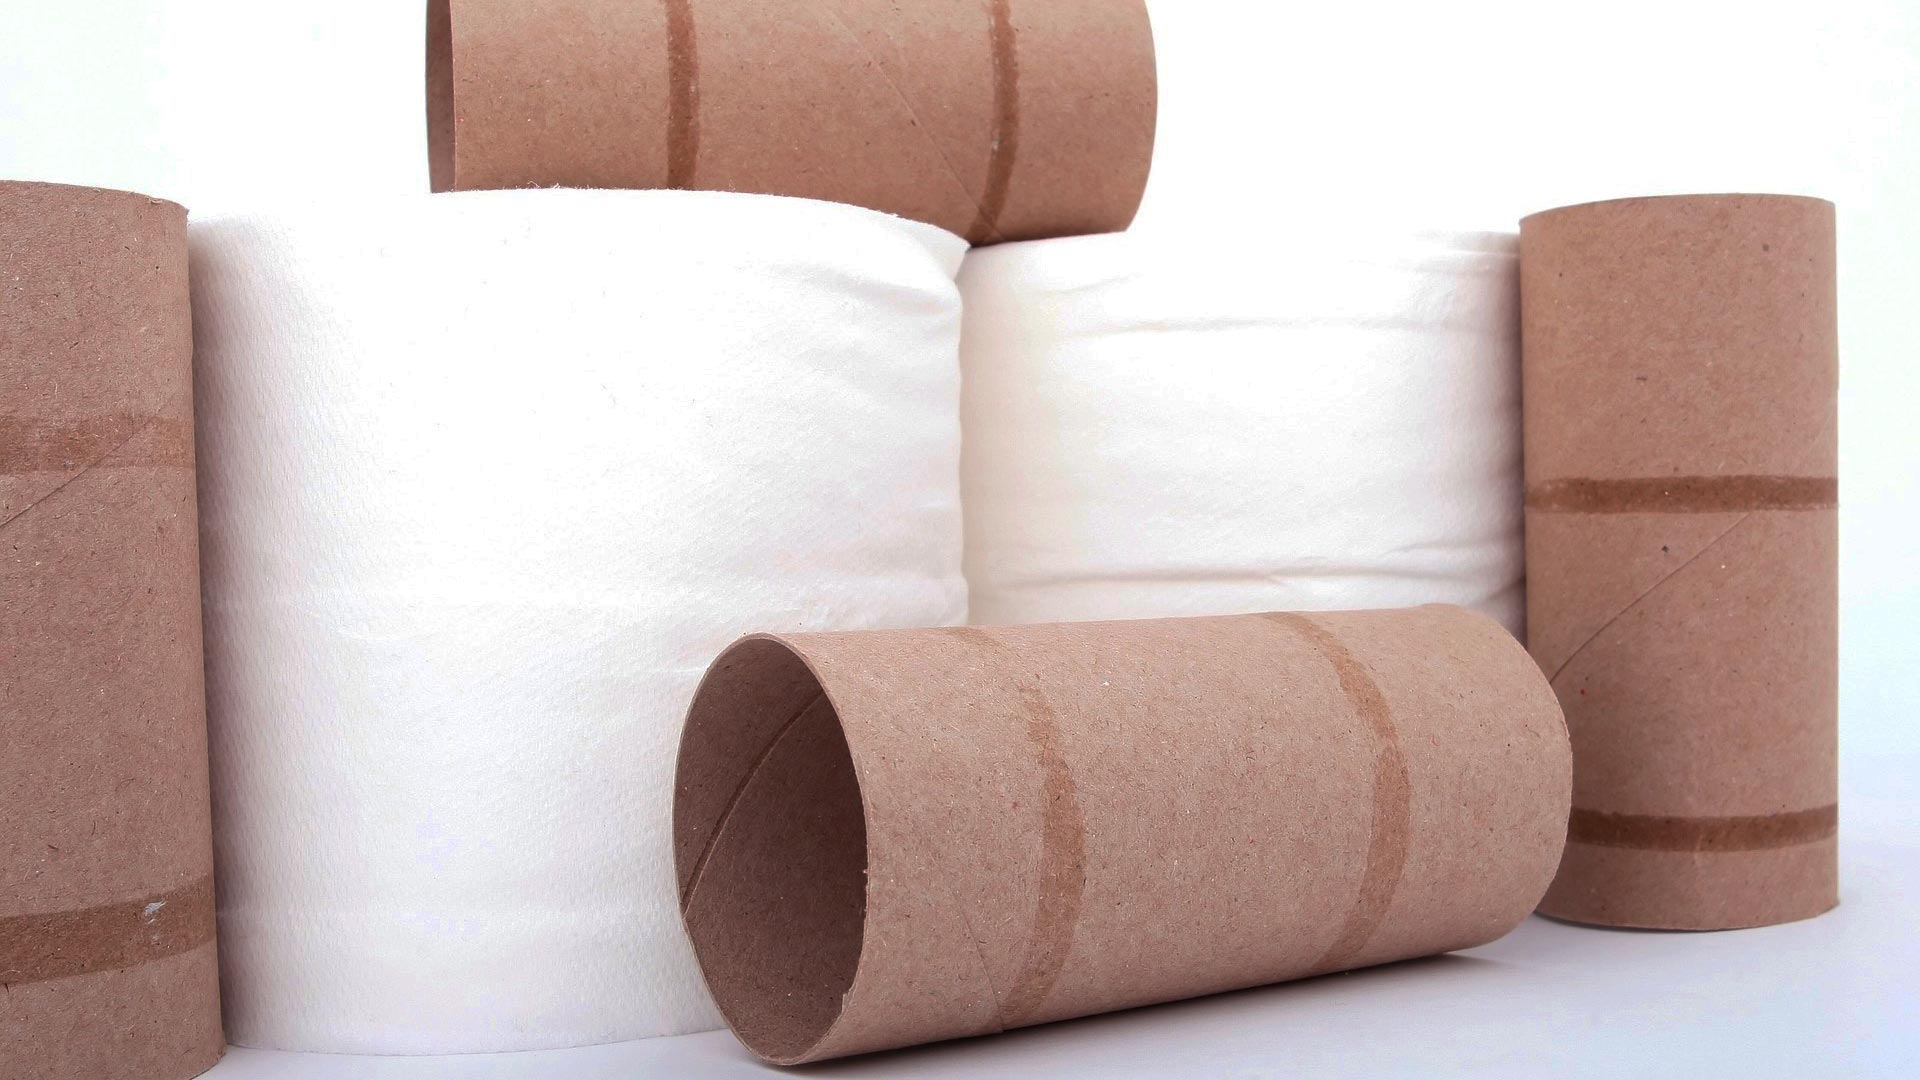 Do You Use More Toilet Paper Than the Average Person?